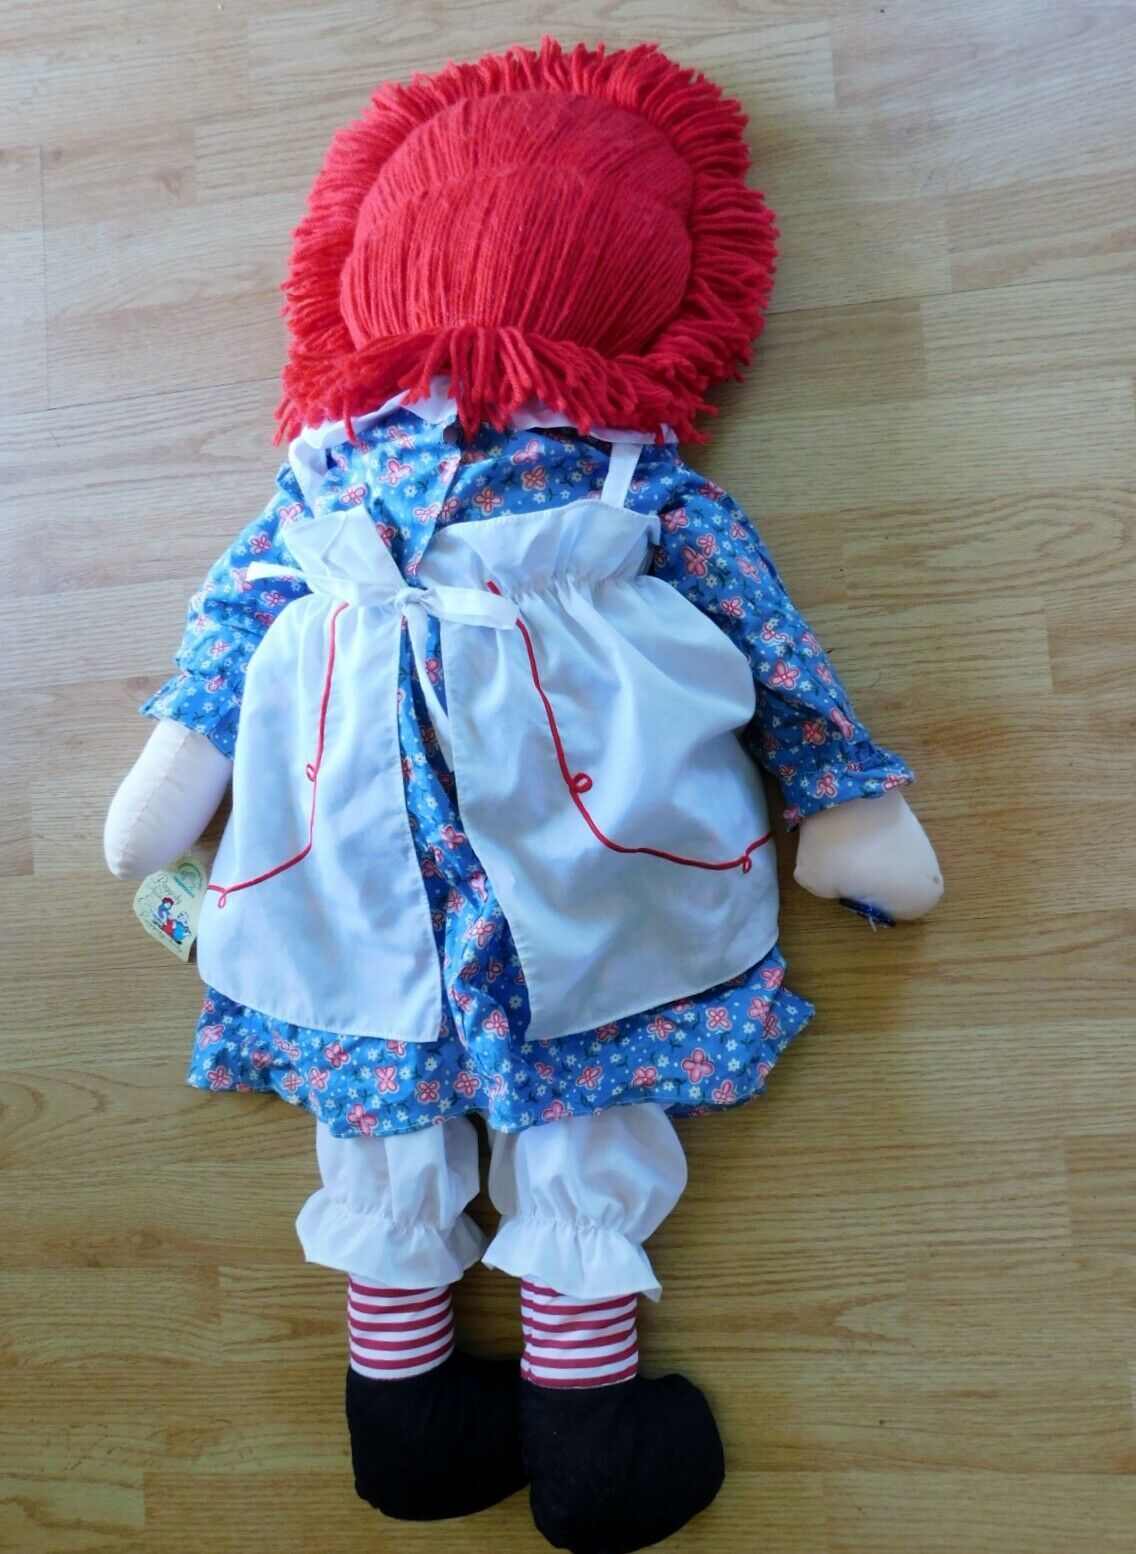 "(2) 36"" RAGGEDY ANN DOLLS with Hangtags Applause image 7"